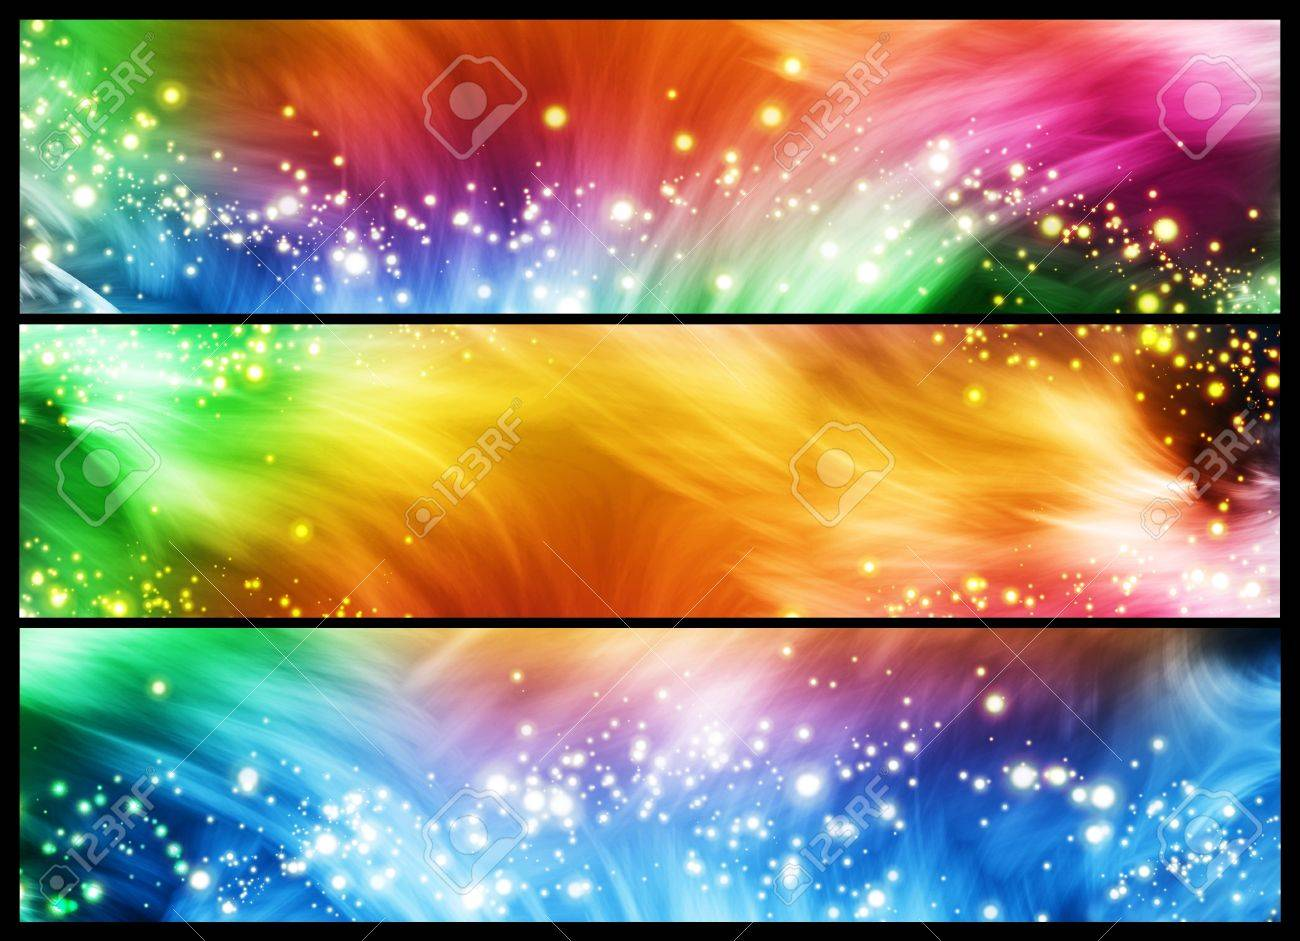 Set of three colourful banners with lines and sparkles Stock Photo - 9754162